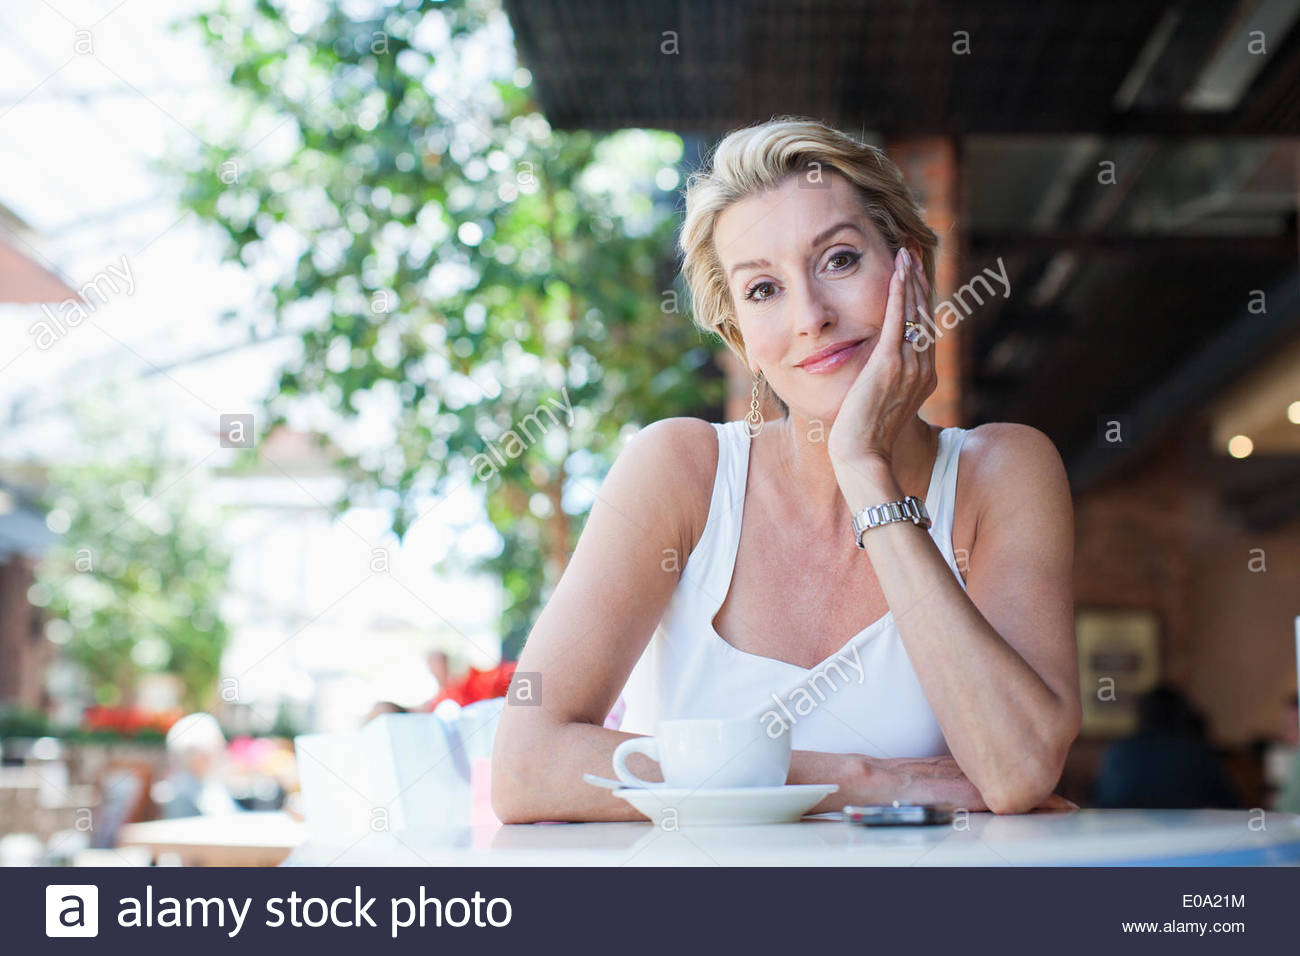 Woman drinking coffee in cafe Photo Stock